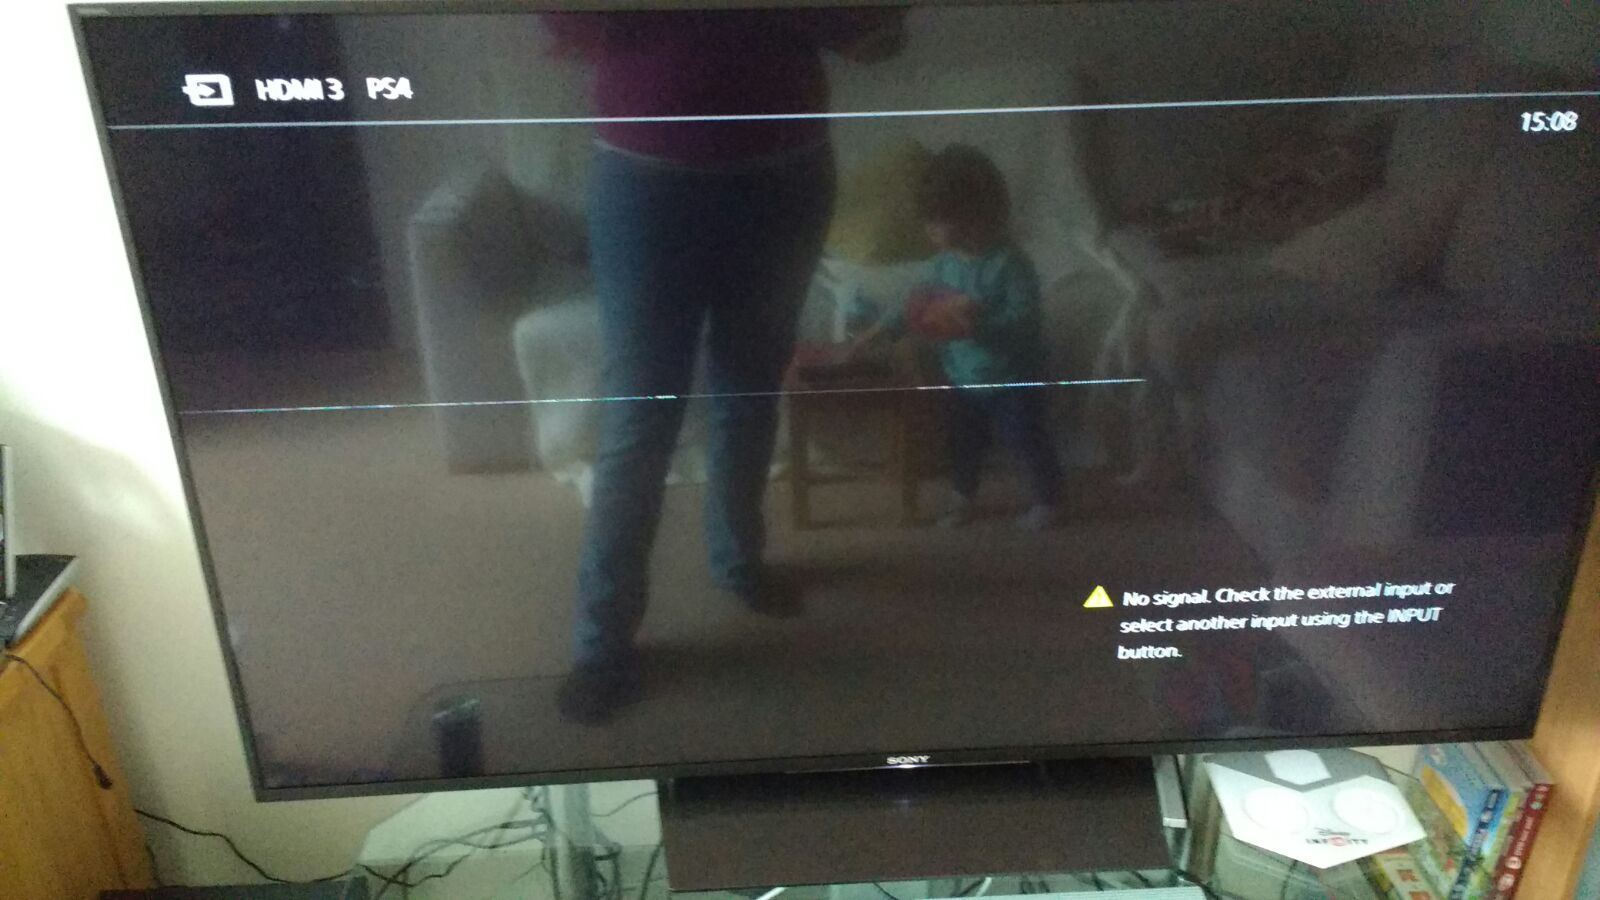 Video display issues